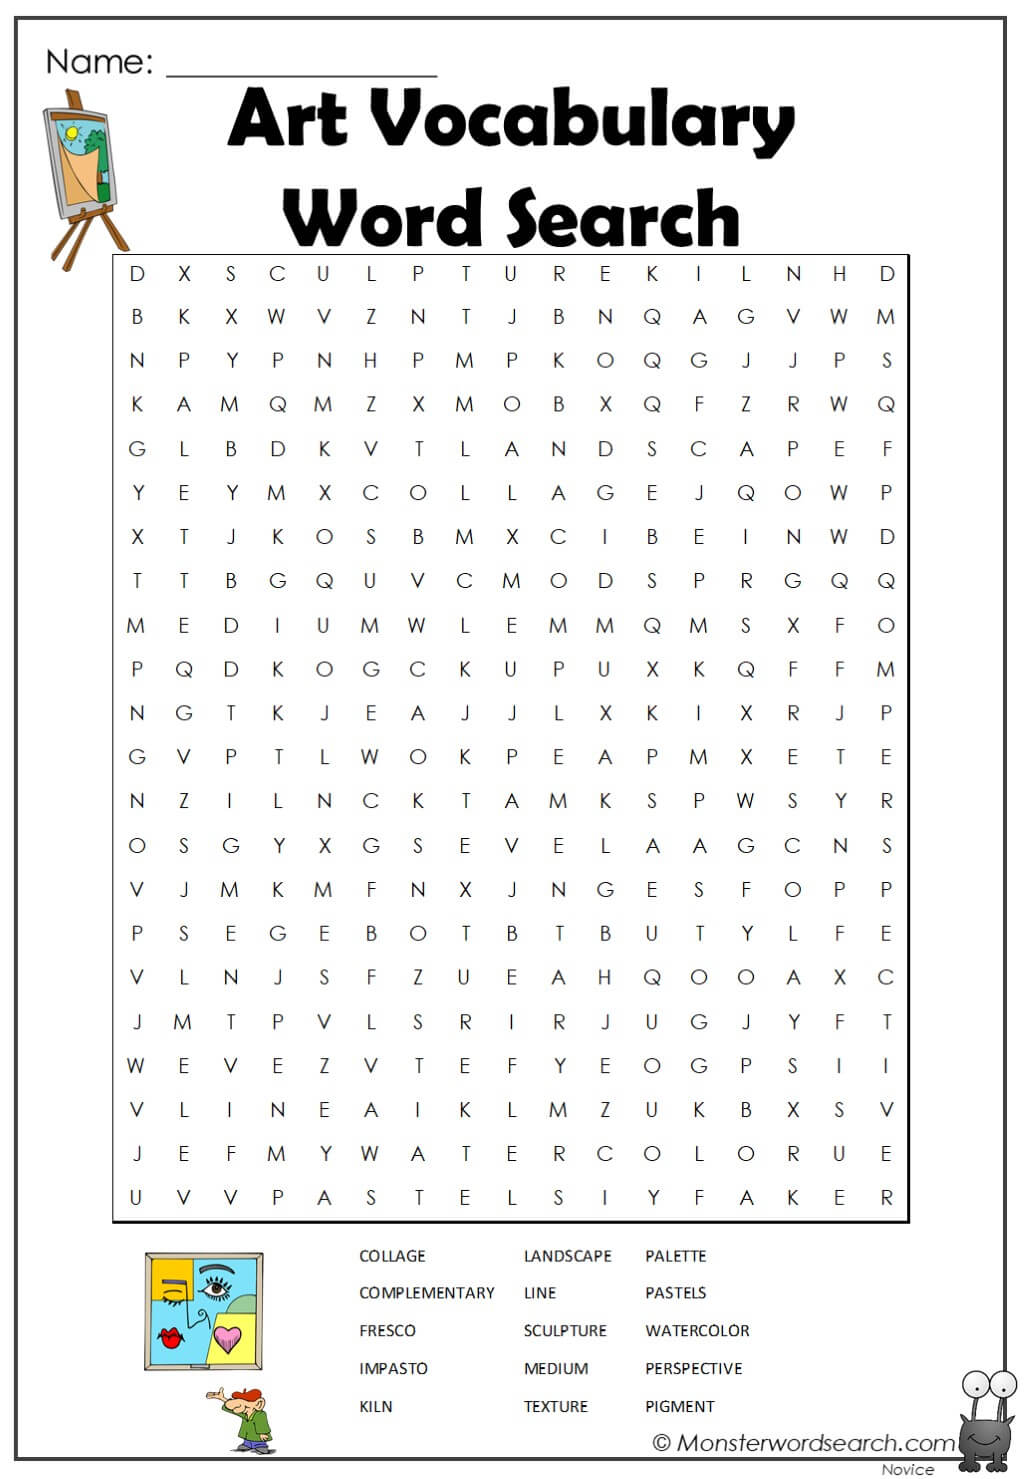 Art Vocabulary Word Search 1